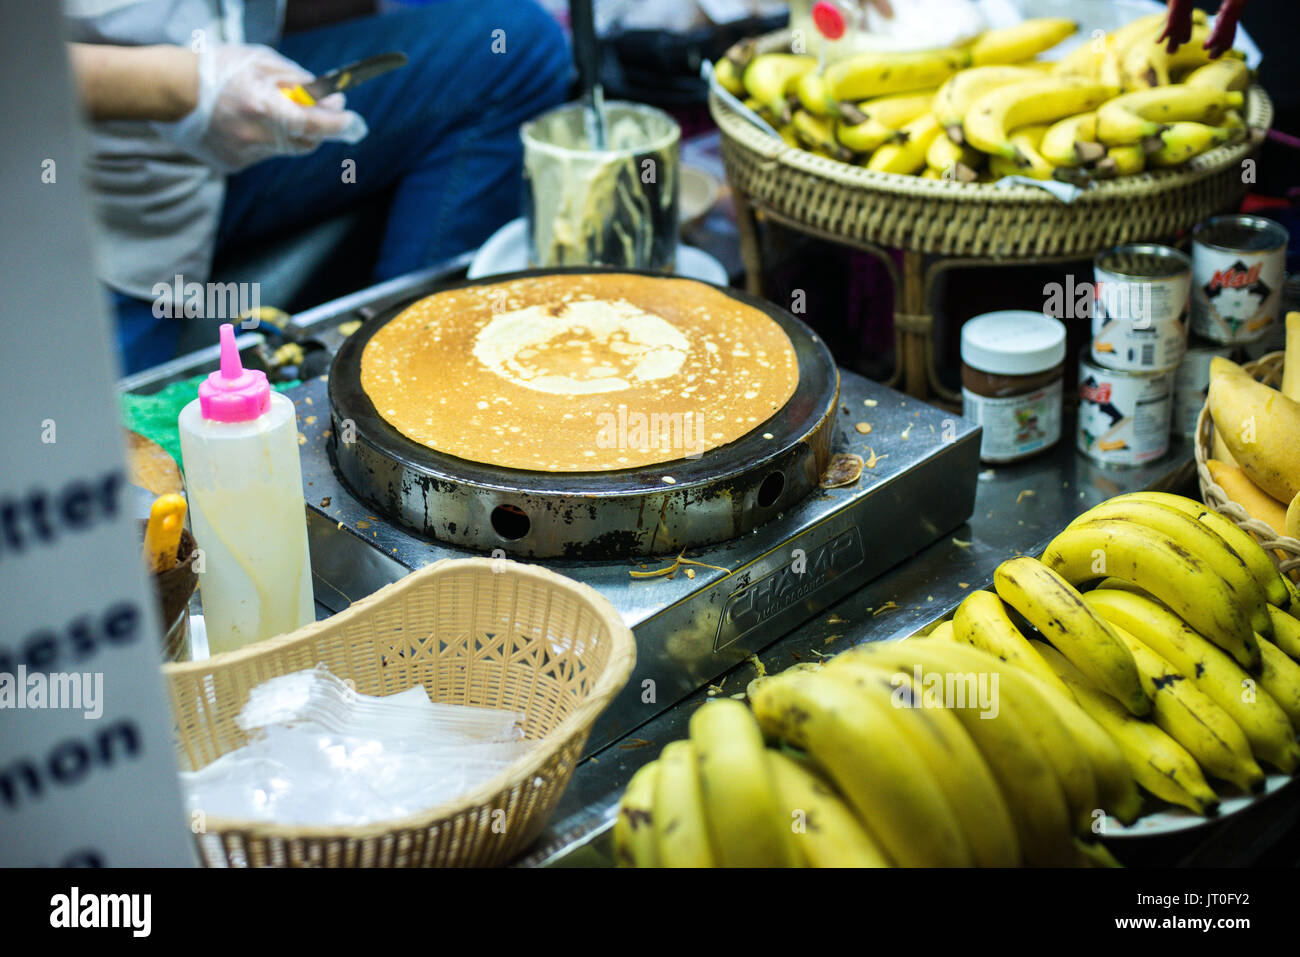 PATONG BEACH, THAILAND - 19 MAY 2017: Nightlife in Thailand. Street food. A prepares a pancake with chocolate in the street. - Stock Image